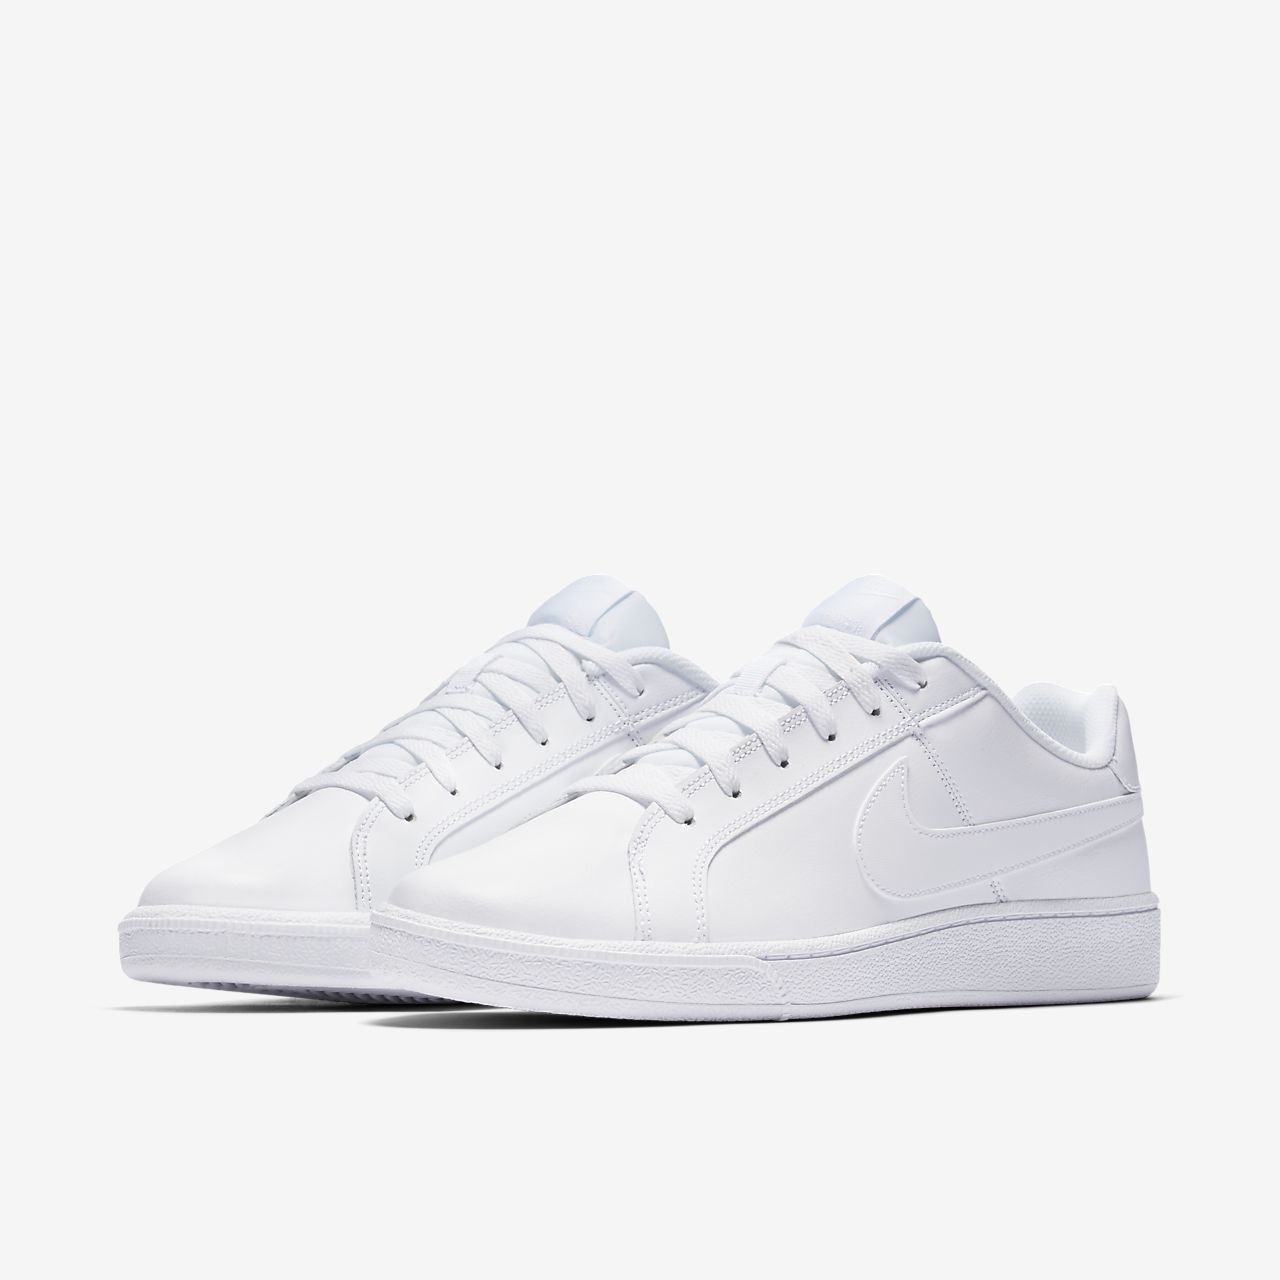 504aa48cb5 Chaussure Nike Court Royale pour Homme. Nike.com FR